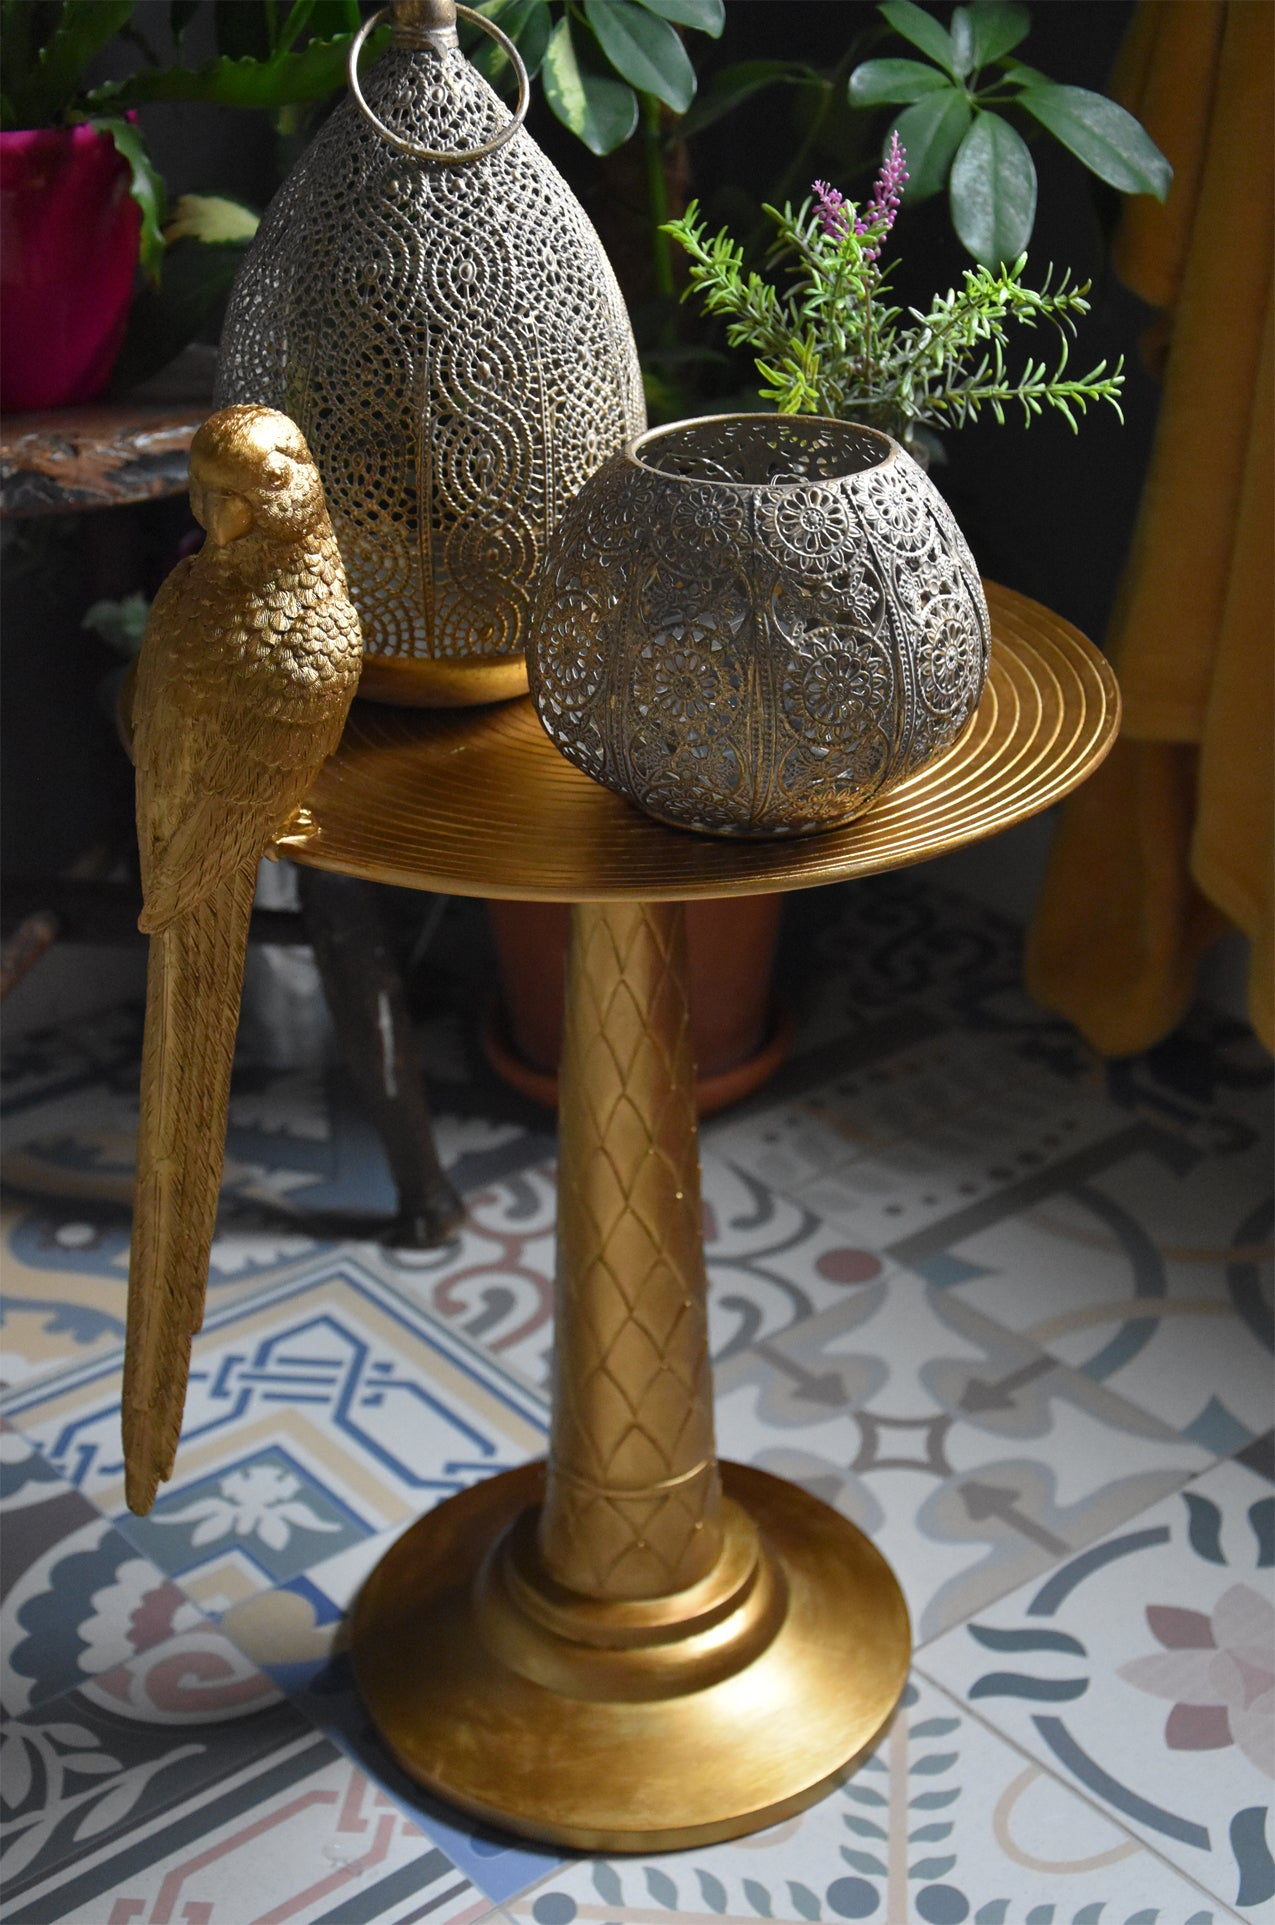 The Gold Parrot Table